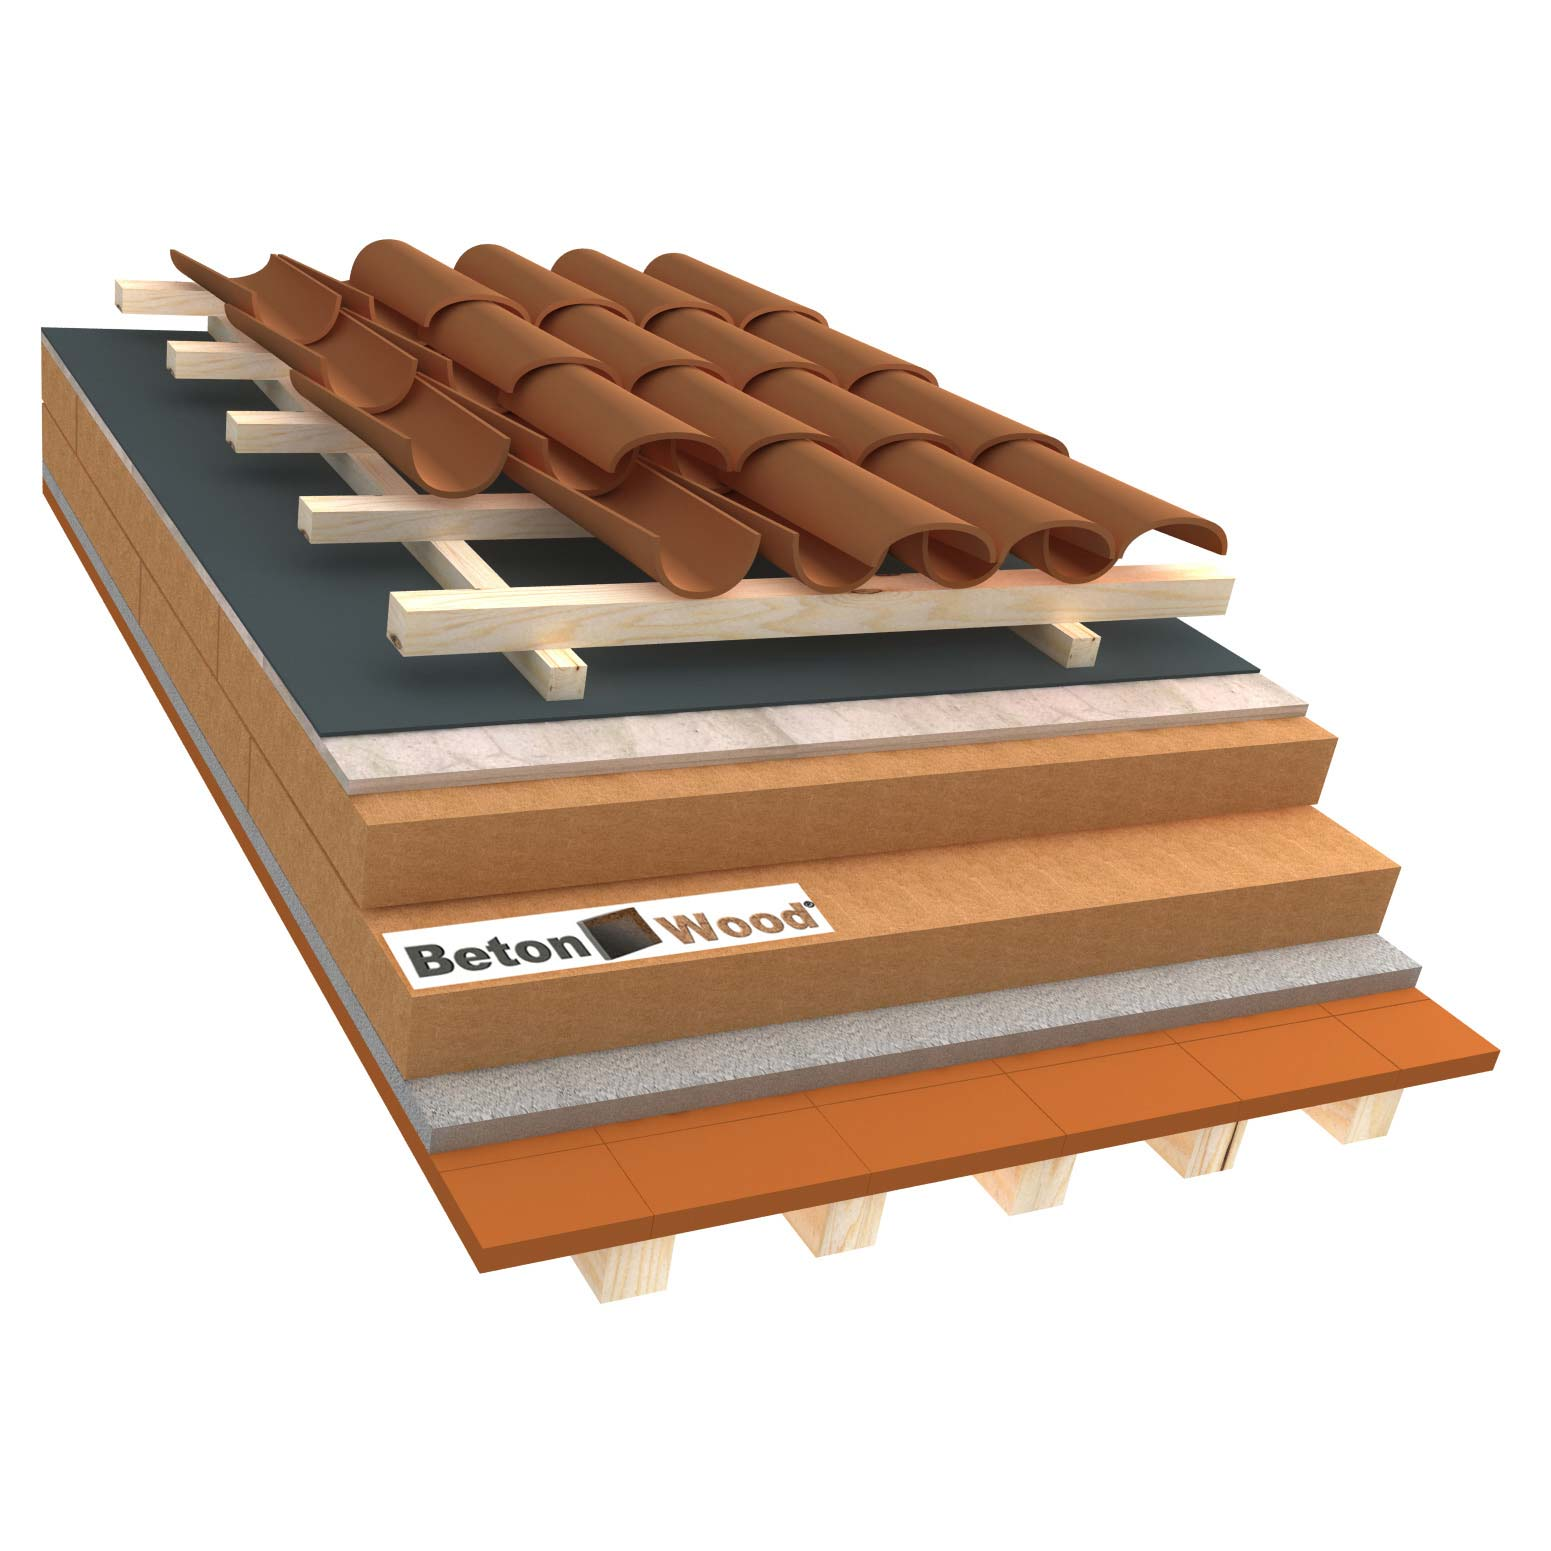 Ventilated roof with wood fiber Therm and cement bonded particle boards on terracotta tiles